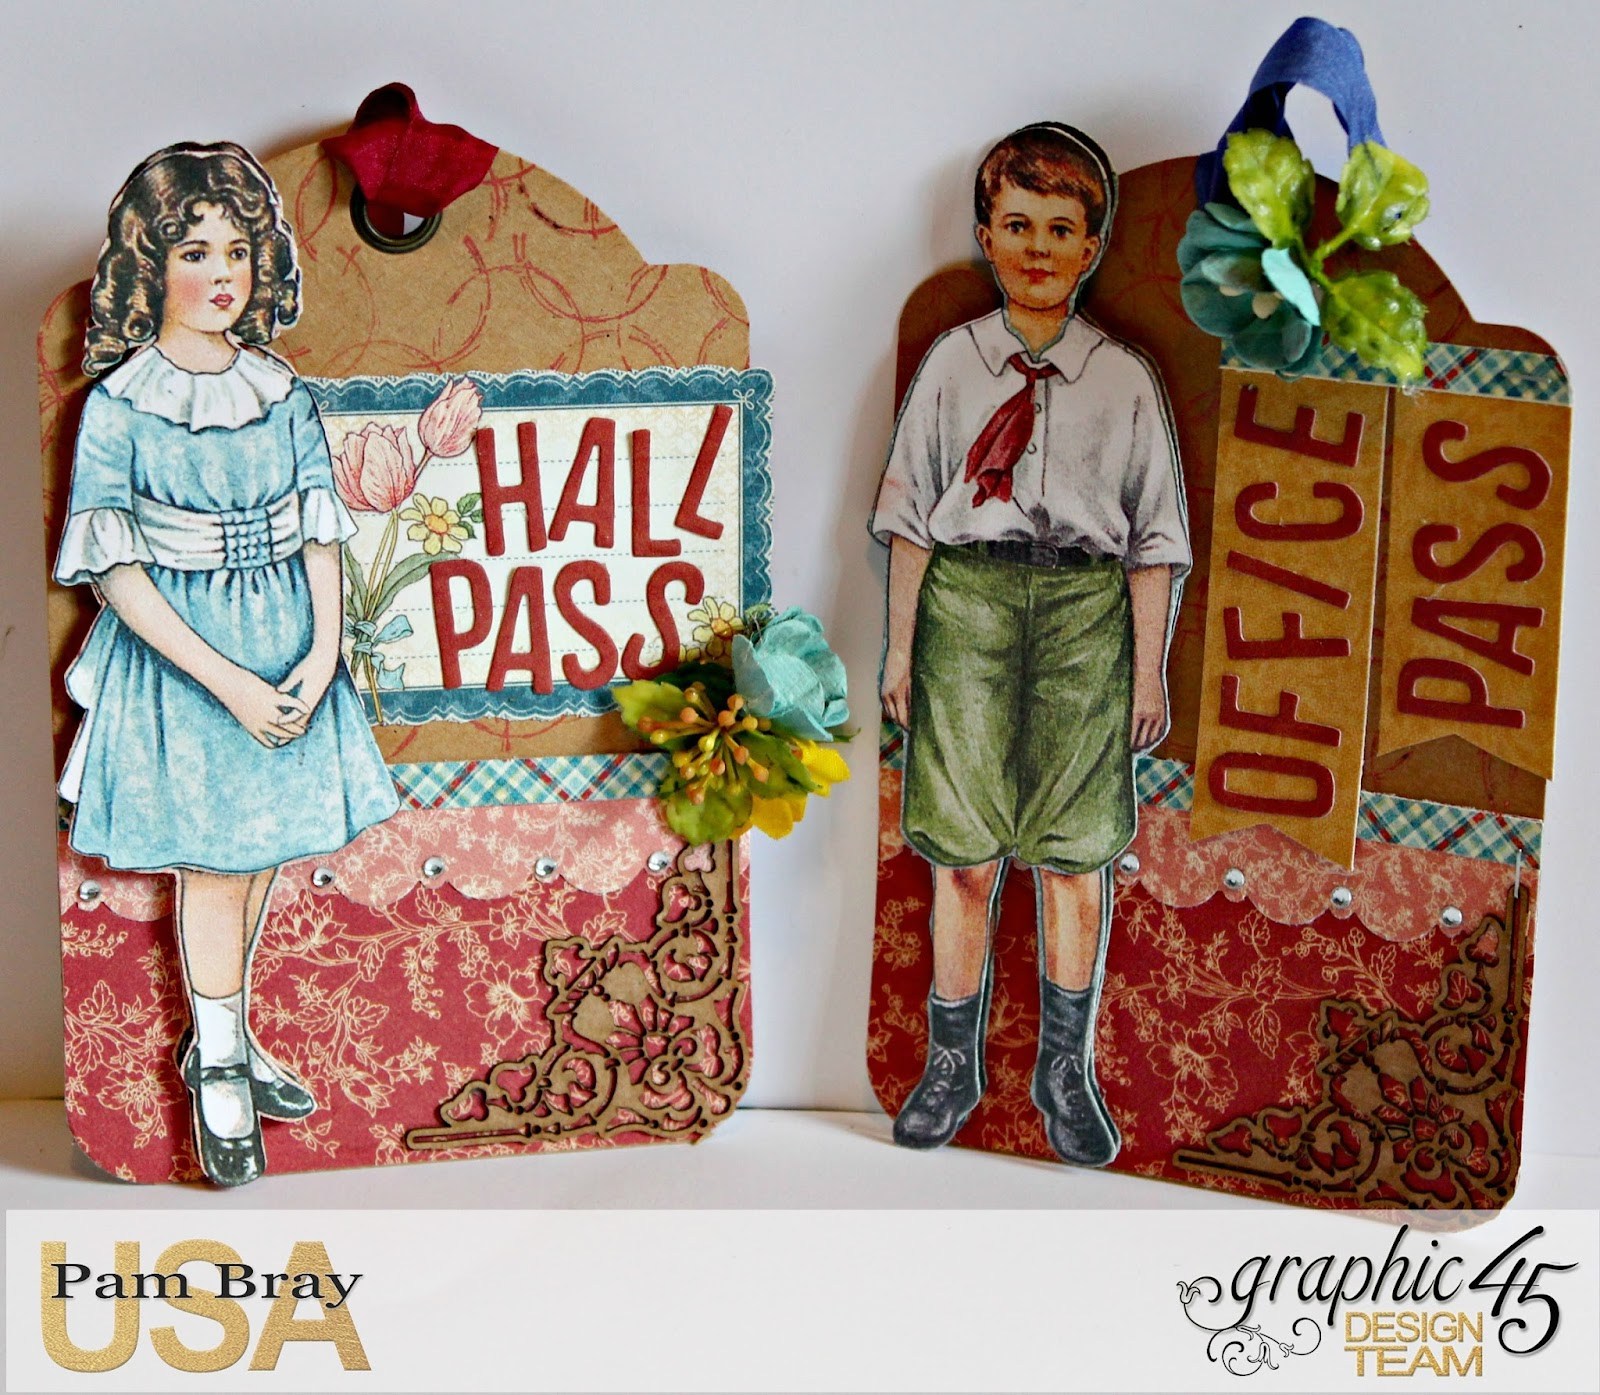 2017 G45 Brand Ambassadors- 2017 Pam Bray  - June 2017 - Penny's Paper Dolls Desk Organizer  with Tutorial Photo 8_7253.jpg